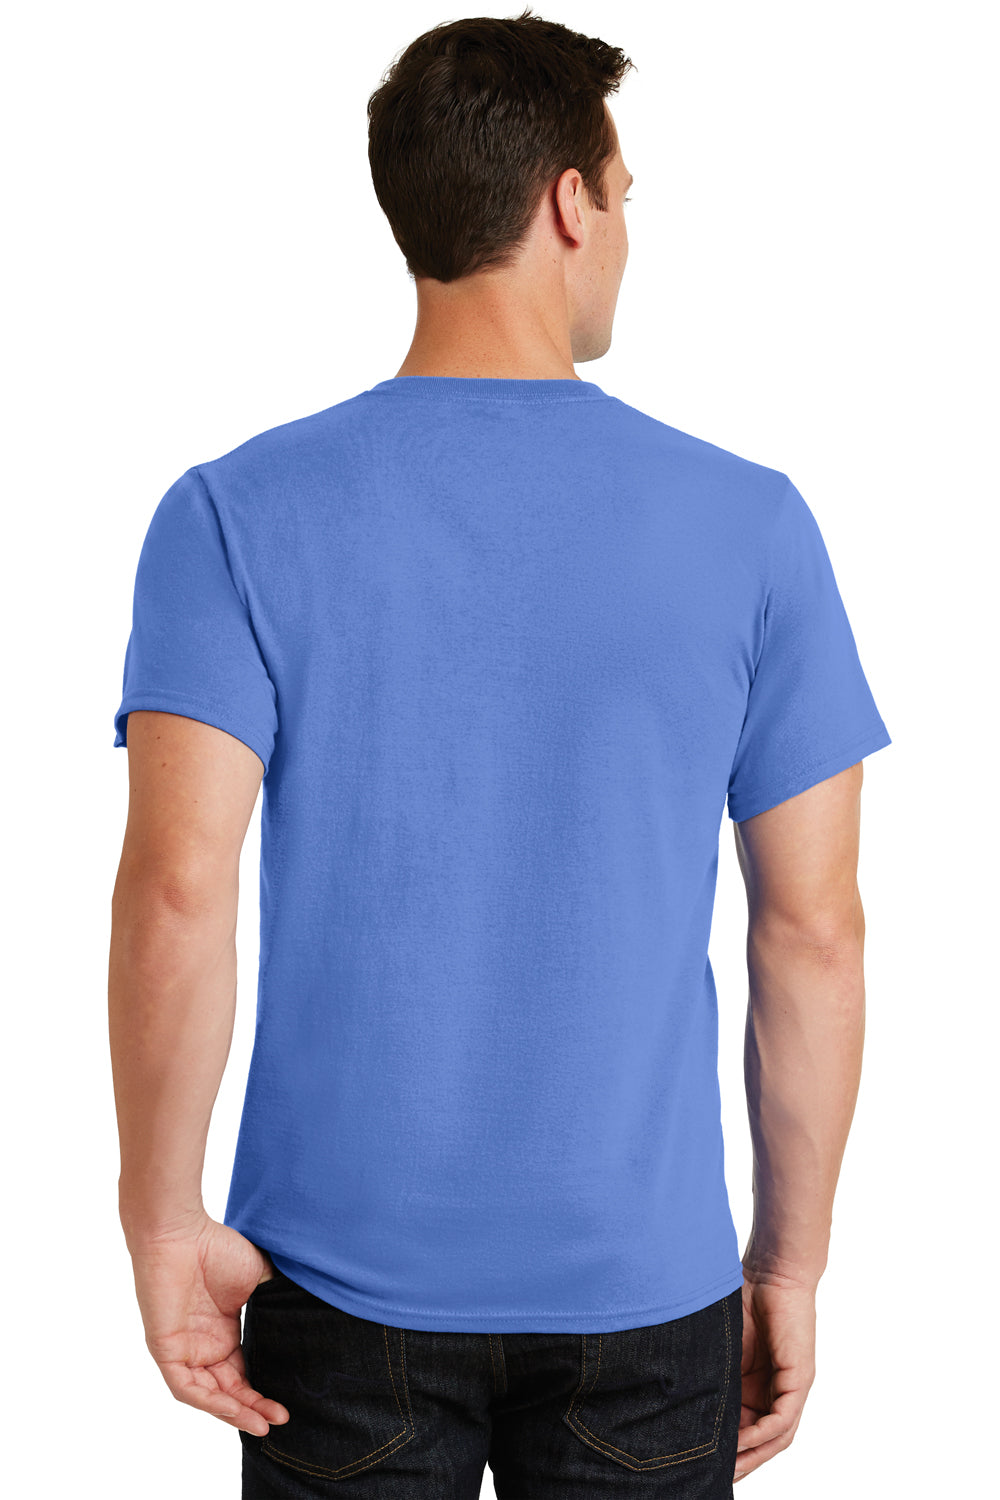 Port & Company PC61 Mens Essential Short Sleeve Crewneck T-Shirt Ultramarine Blue Back